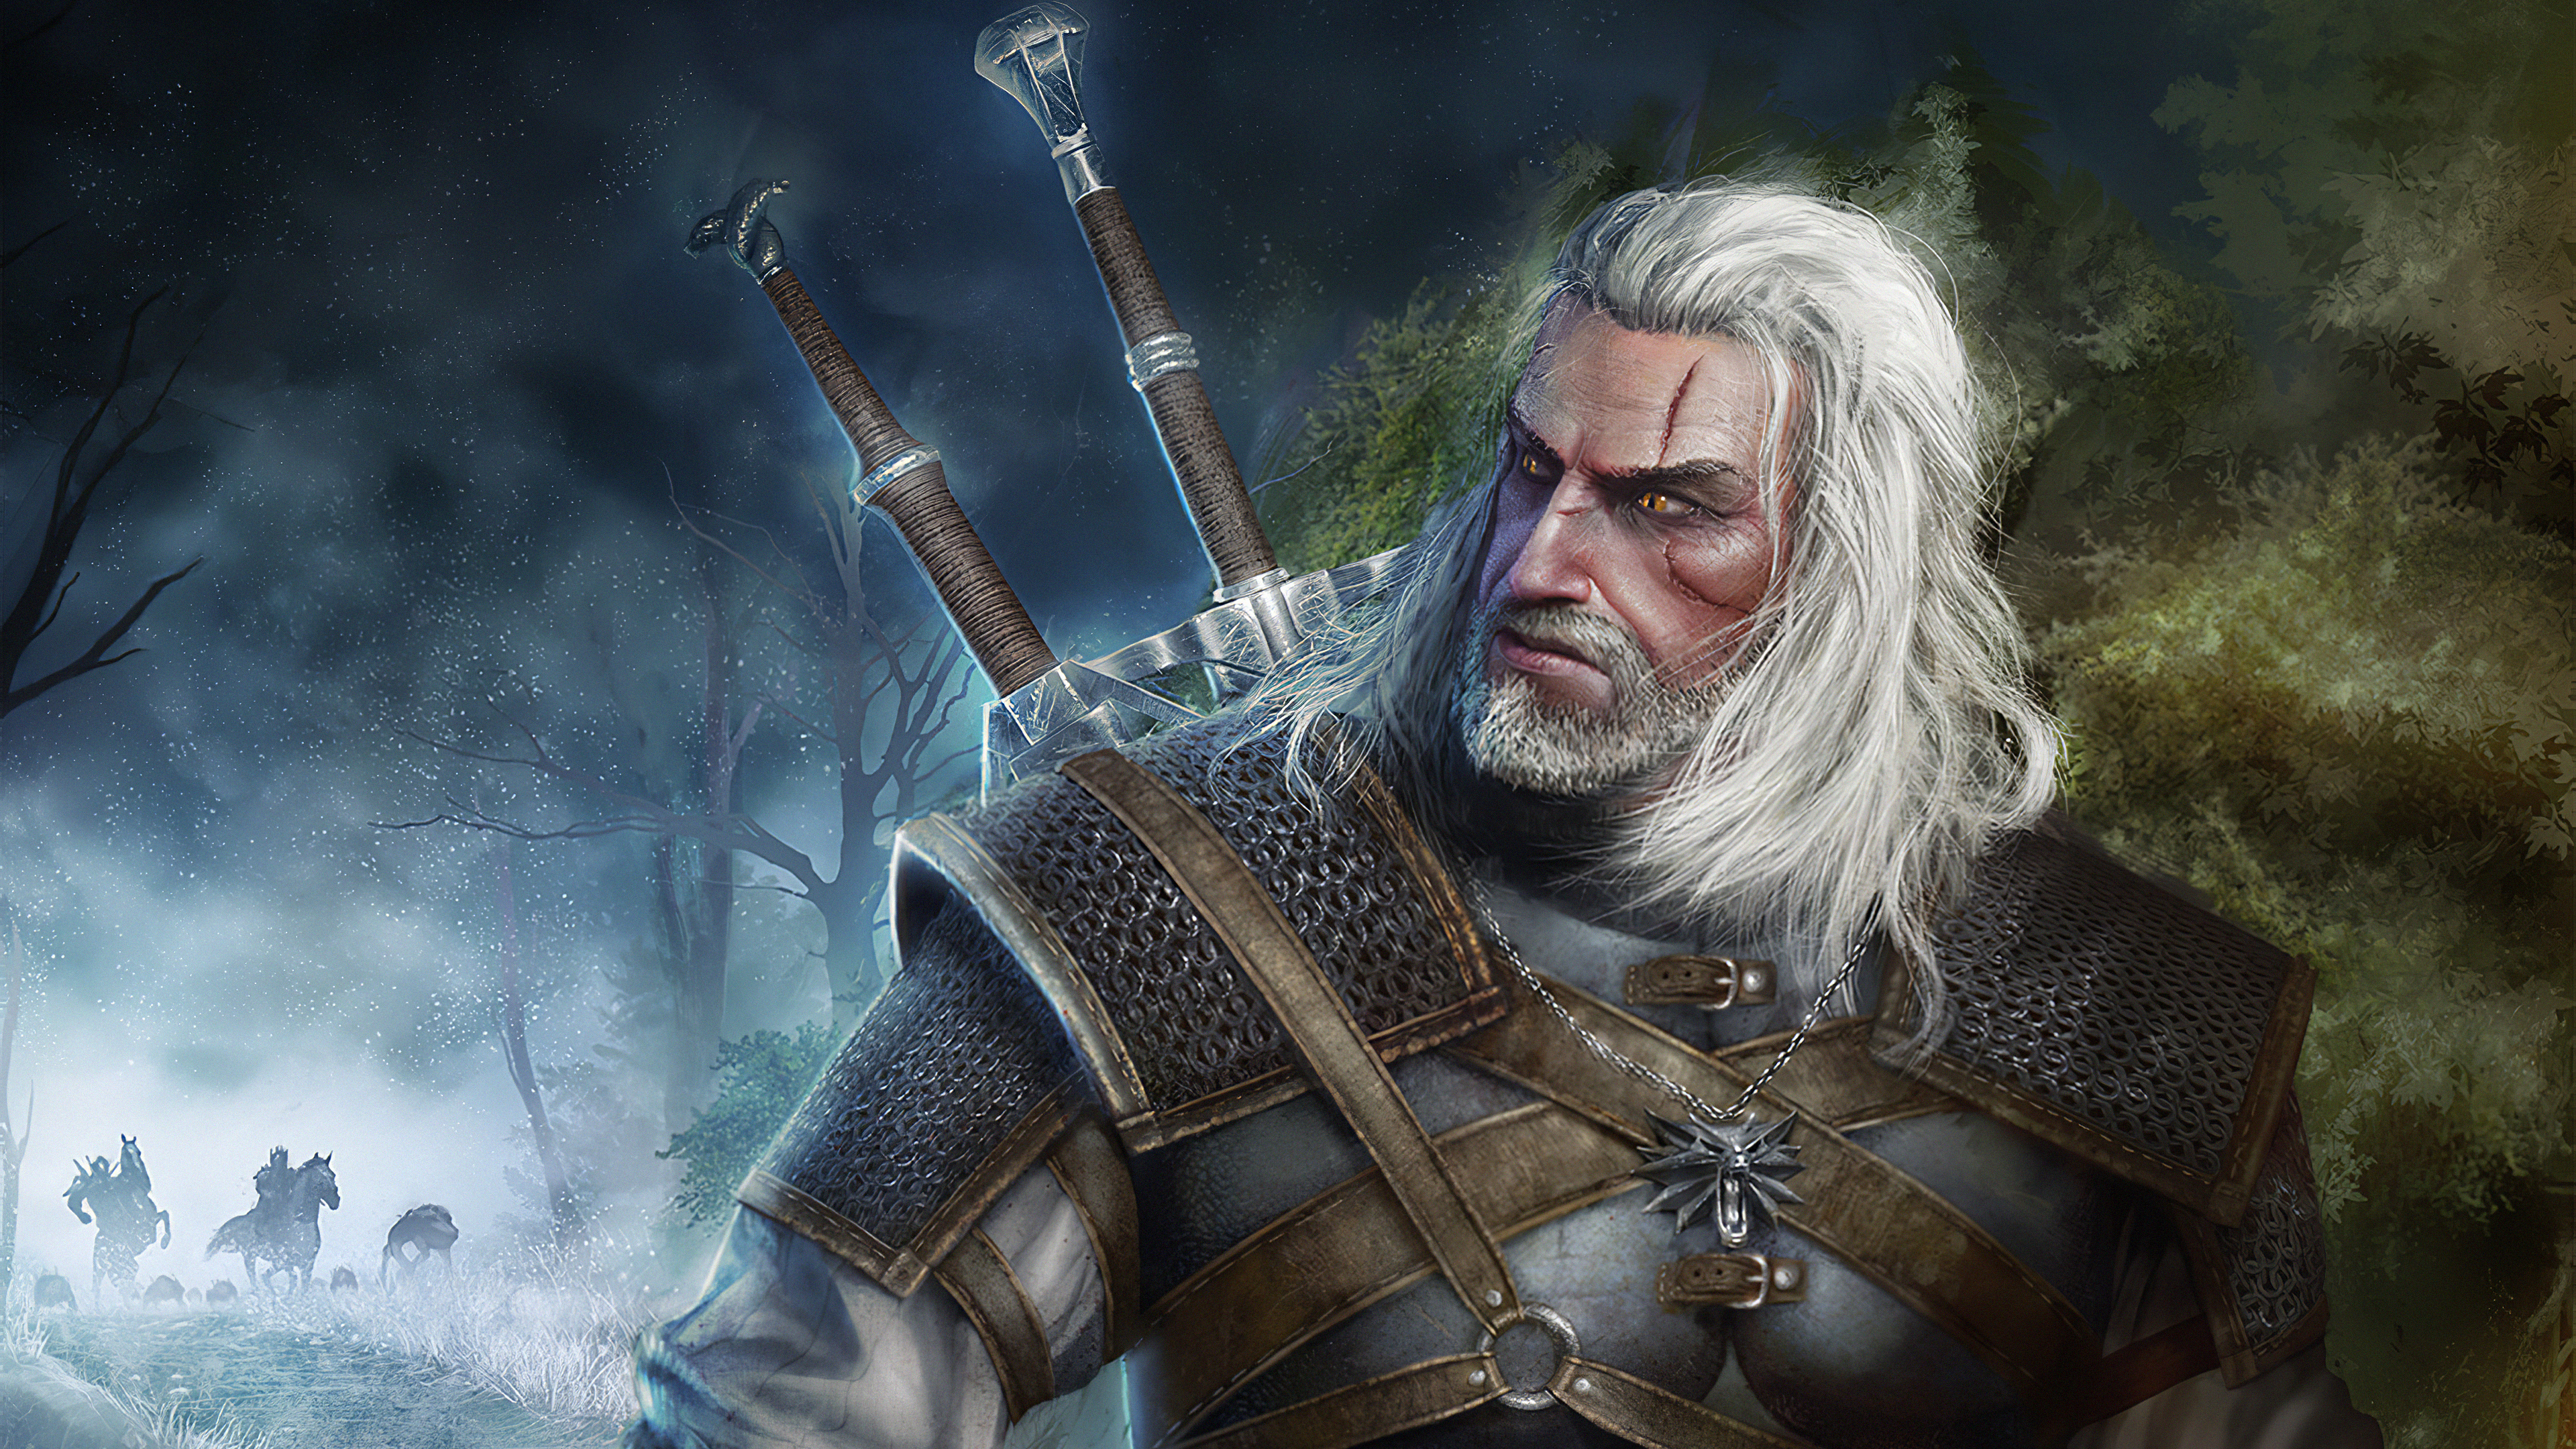 2560x1440 Geralt Of Rivia The Witcher 3 1440p Resolution Hd 4k